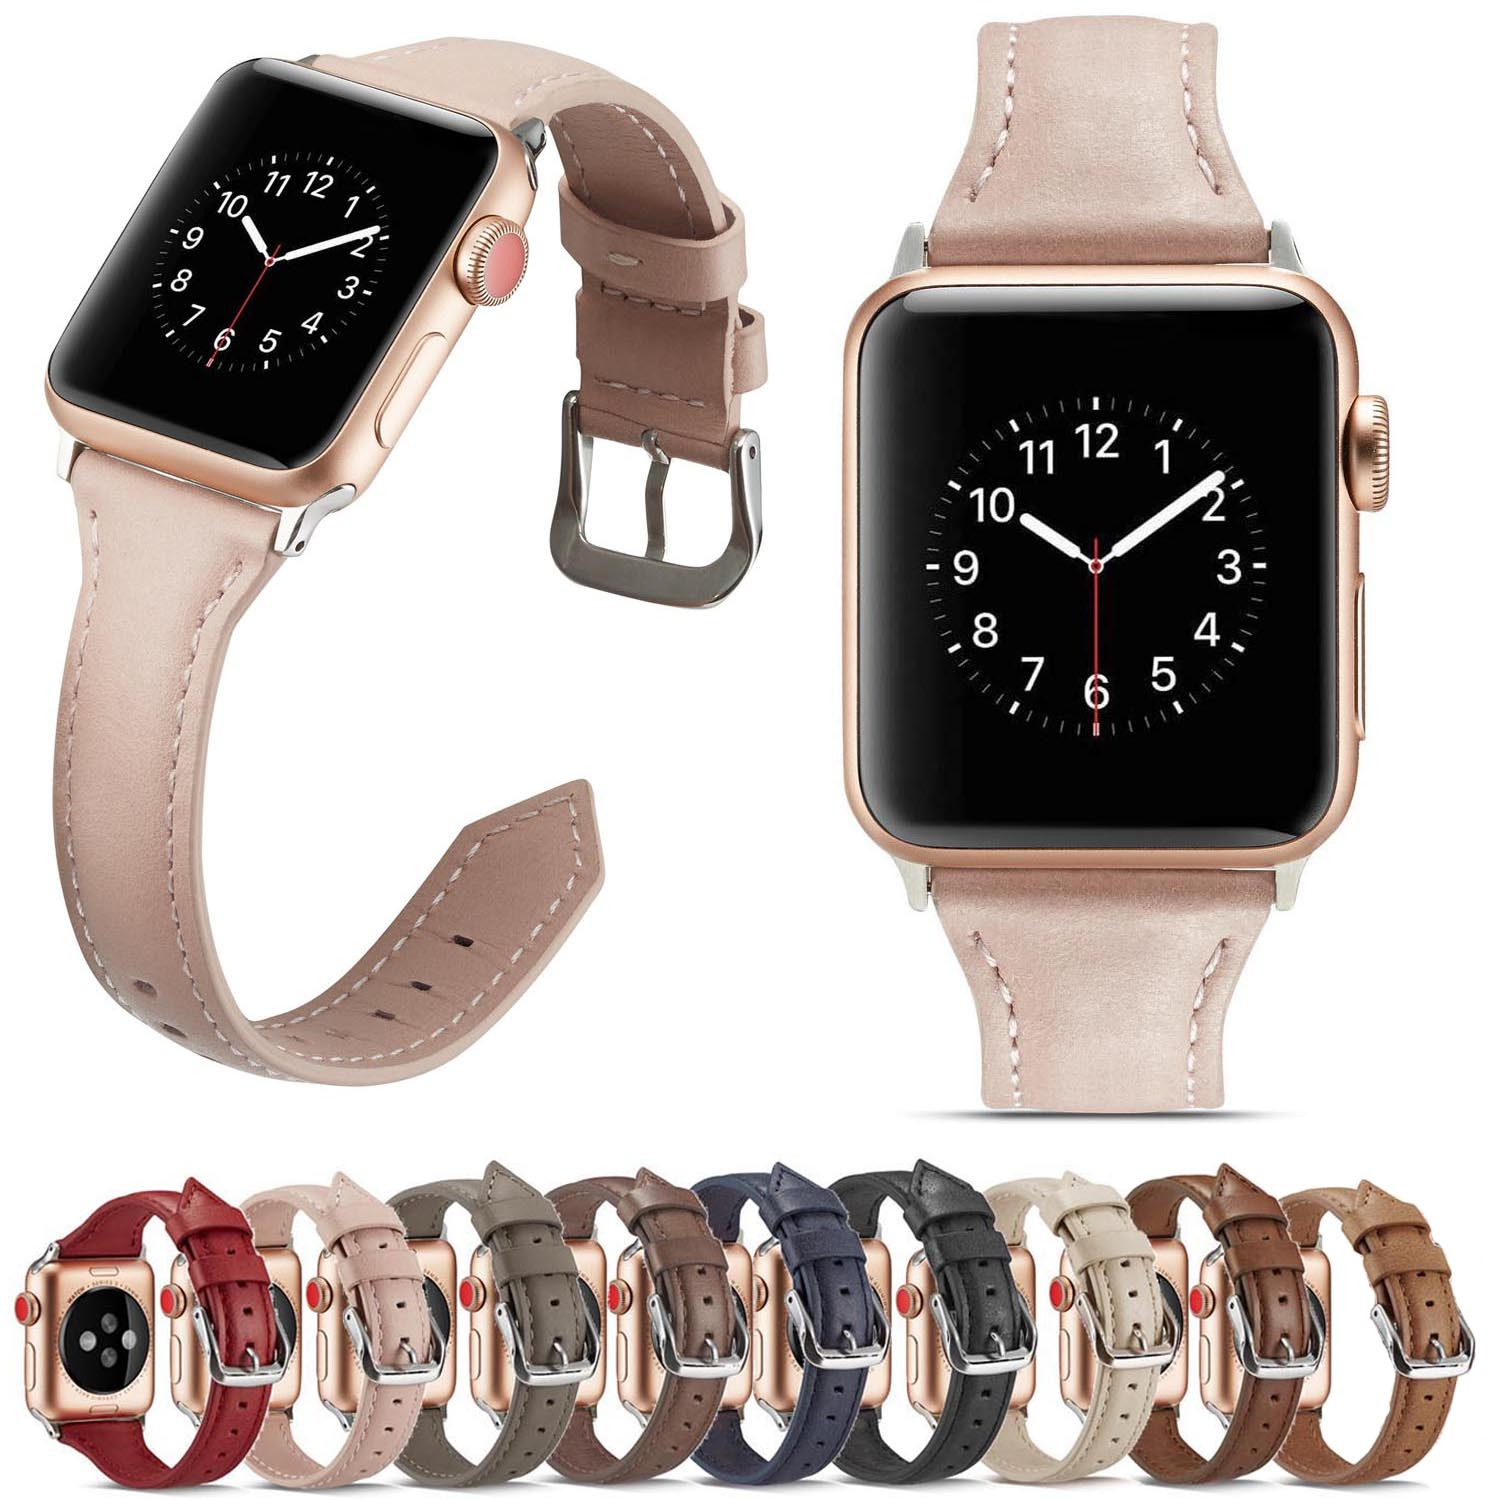 New Soft Genuine Leather iWatch Strap Replacement Band Metal Clasp Bracelet for Apple Watch Series 5/4/3/2/1 38mm 40mm 42mm 44mm